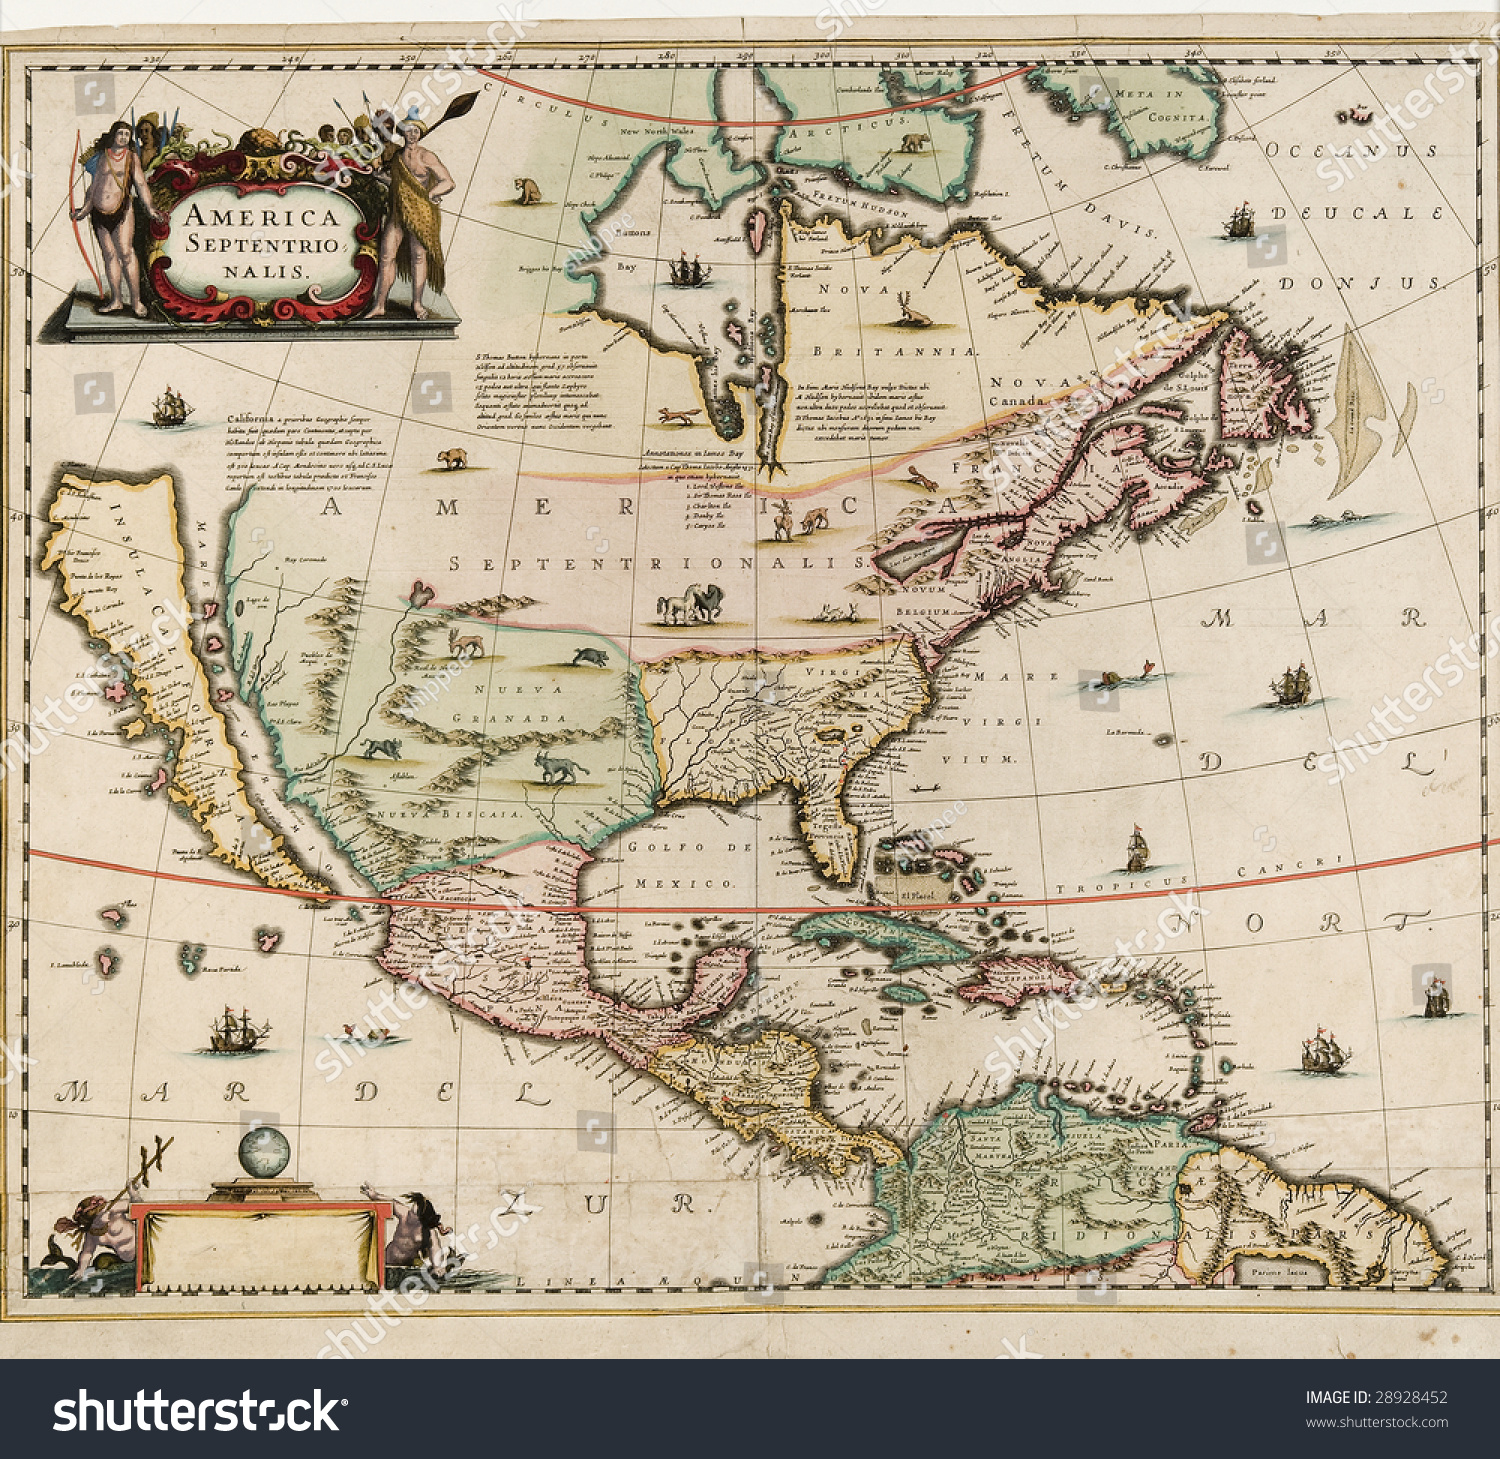 Old world map america septentrio nalis stock photo royalty free old world map america septentrio nalis probably dates around early 1600s showing north america gumiabroncs Choice Image